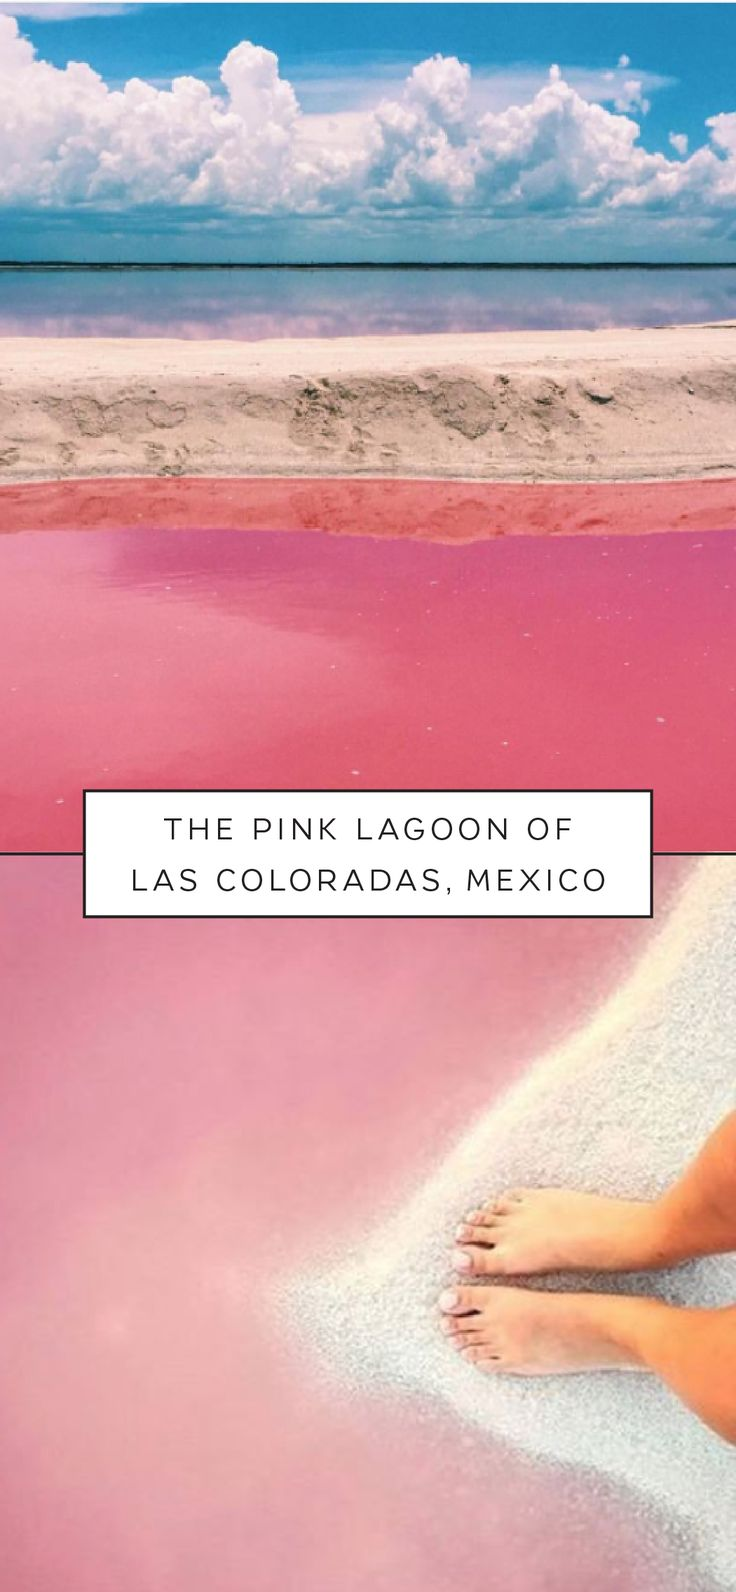 There's no need for a filter when the view is this stunning. Add The Pink Lagoon of Las Coloradas, Mexico to your list of must-see travel destinations. The waters of this incredible natural wonder are dyed a gorgeous shade of peachy pink thanks to tiny microorganisms that live in the lagoon. Give your vacation photos a little more glamour with this one-of-a-kind trip.